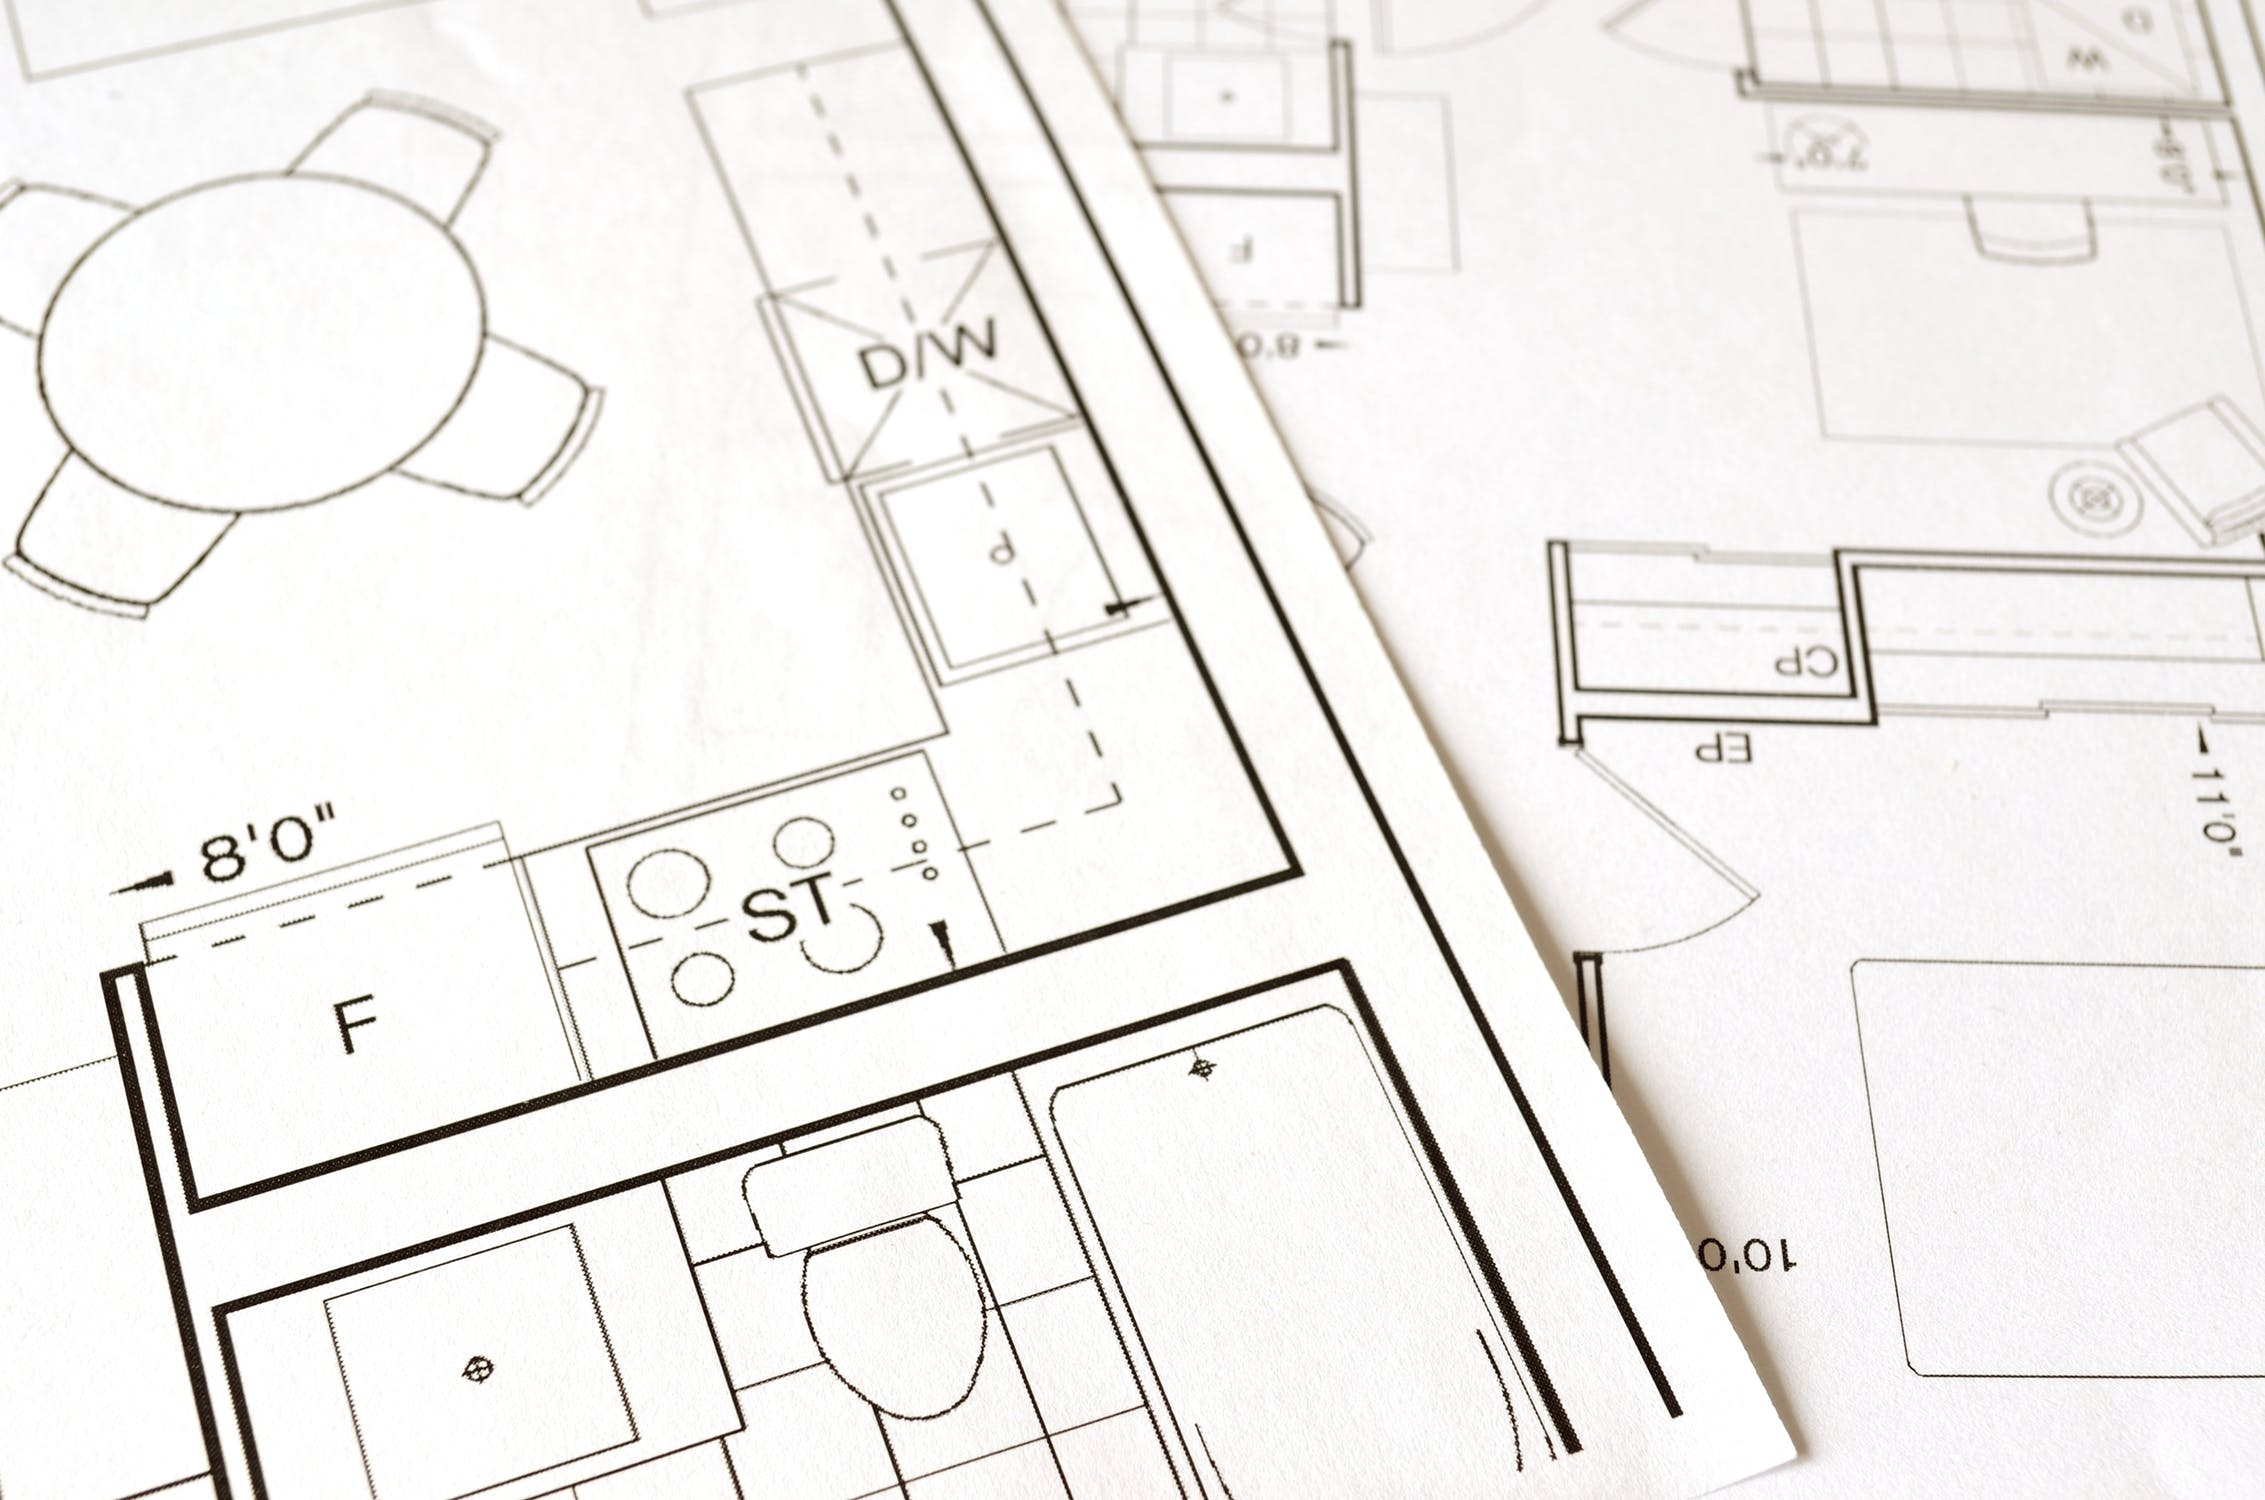 Planning drawings and planning application.